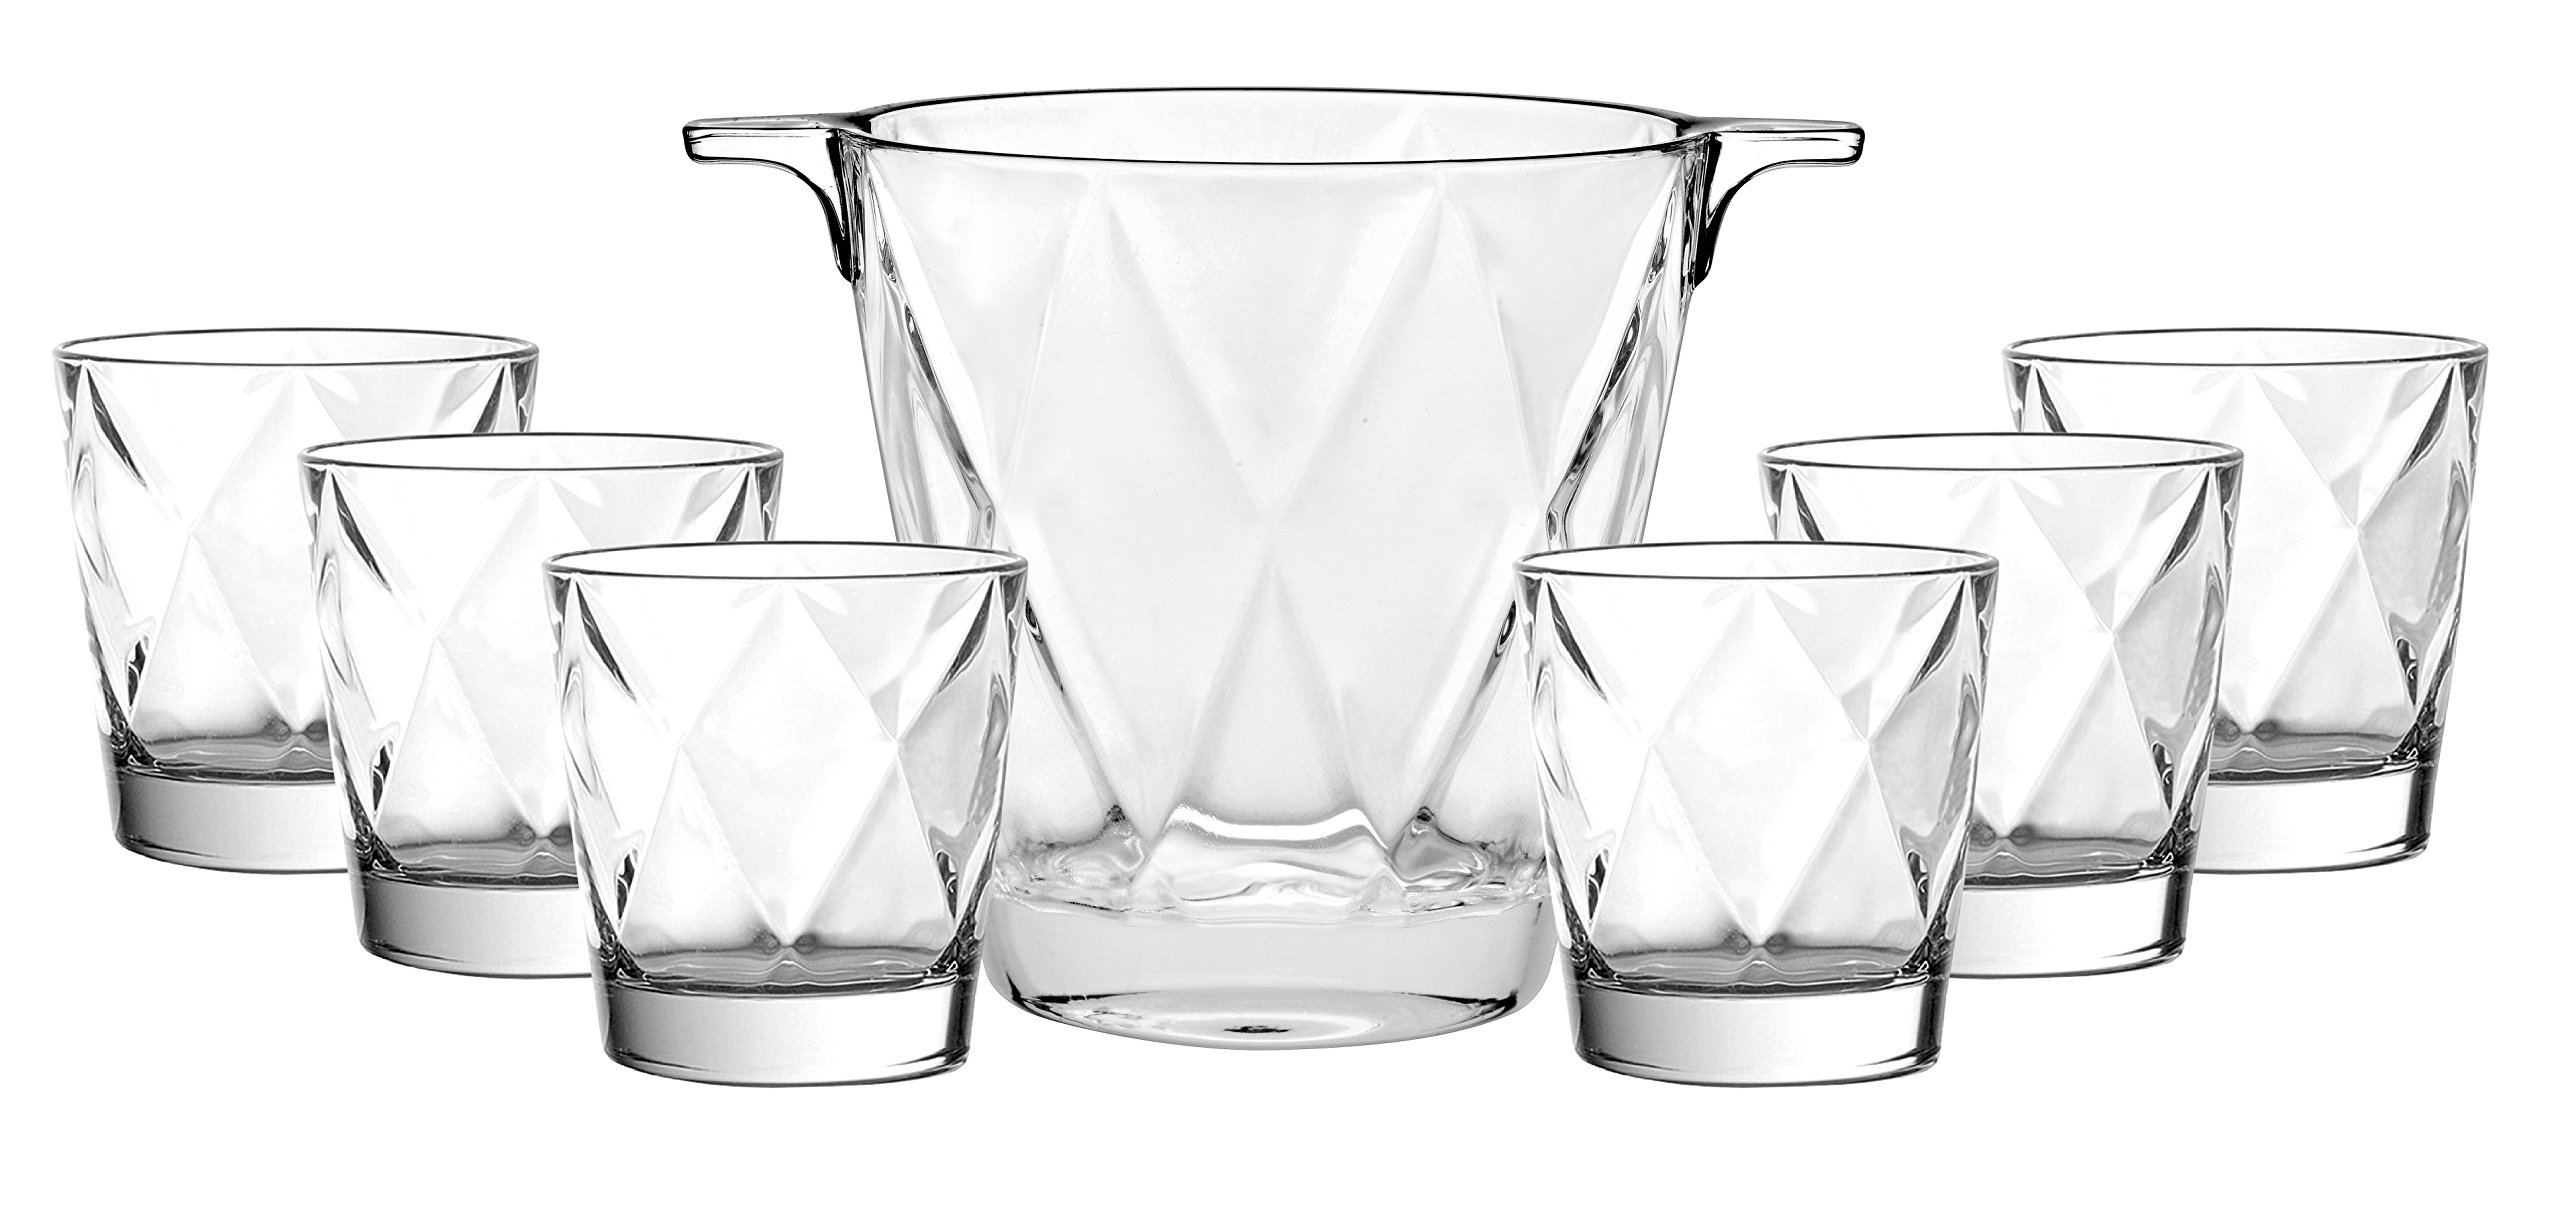 Barski - European Quality - 7 Piece Bar Set - for Whiskey - Wine - Liquer - Includes - Ice Bucket 5.9''H - 6 Pcs of 12.5 oz Double OF Tumblers - Superb Durable Glass - Gift Boxed - Made in Europe by Barski